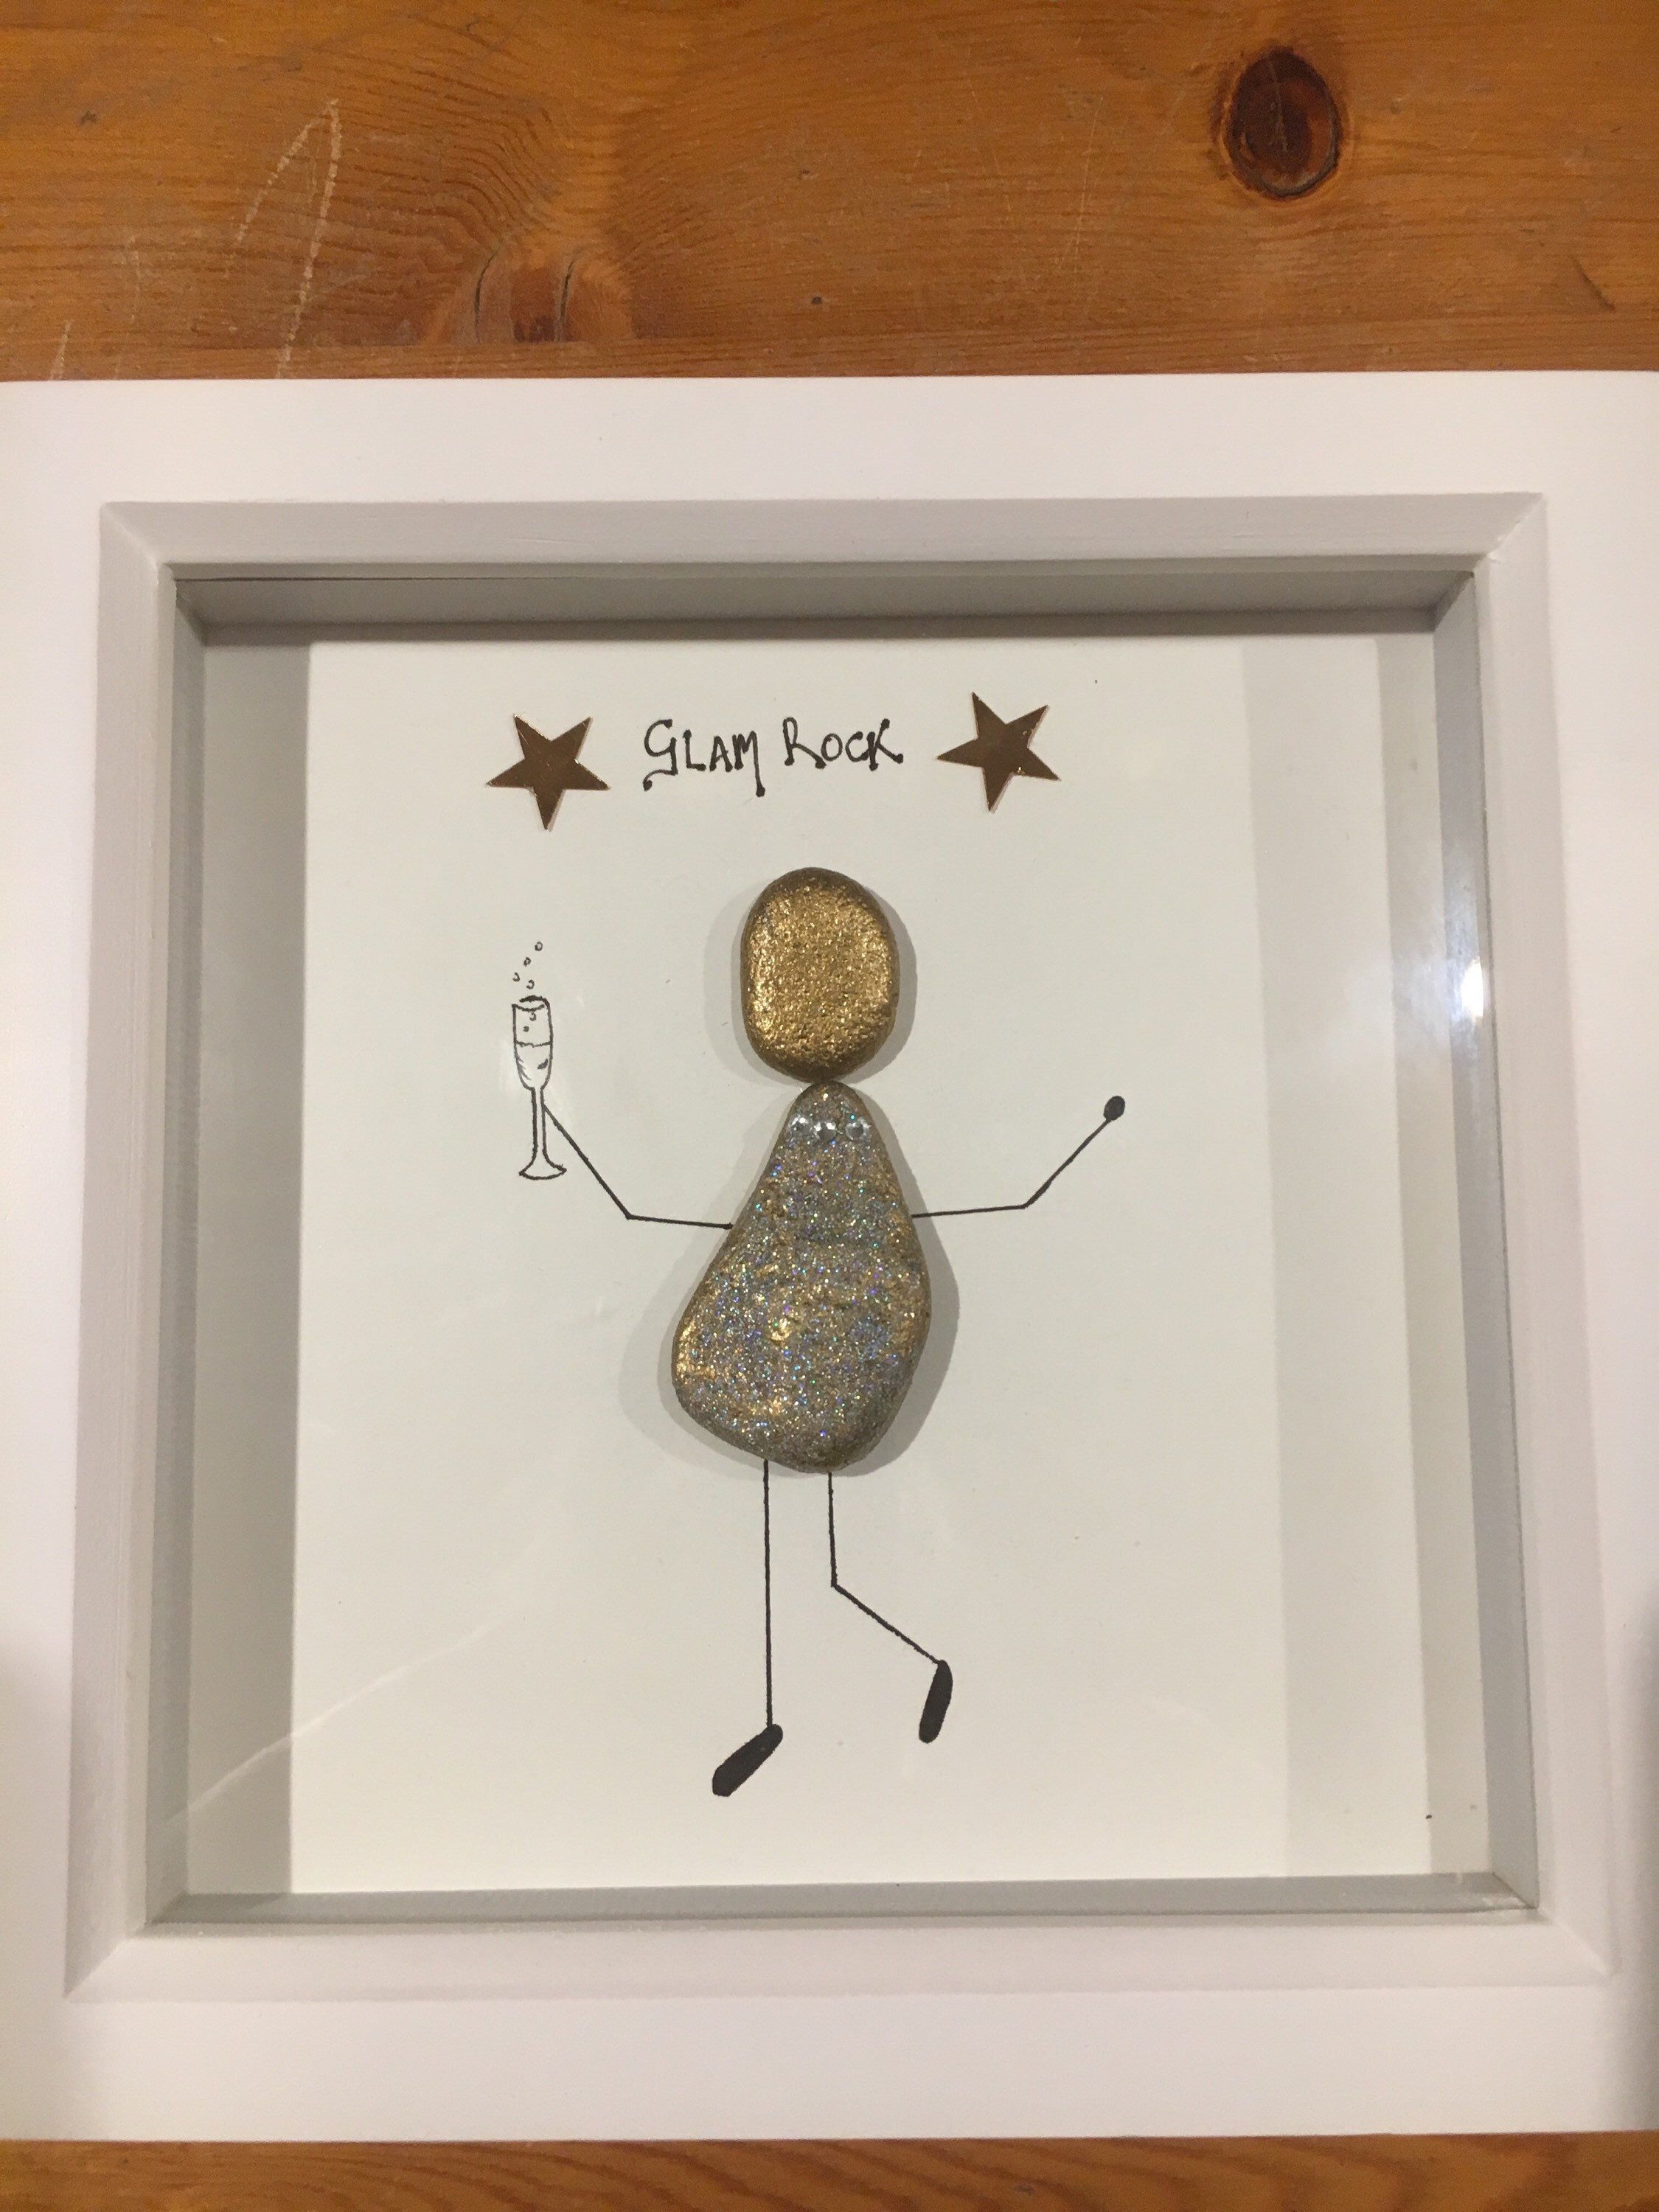 Pebble Picture Glam Rock One Lady Celebrating With Bubbly Great Birthday Pressie Etsy Mixedmedia White Birt Pebble Art Pebble Art Family Pebble Pictures